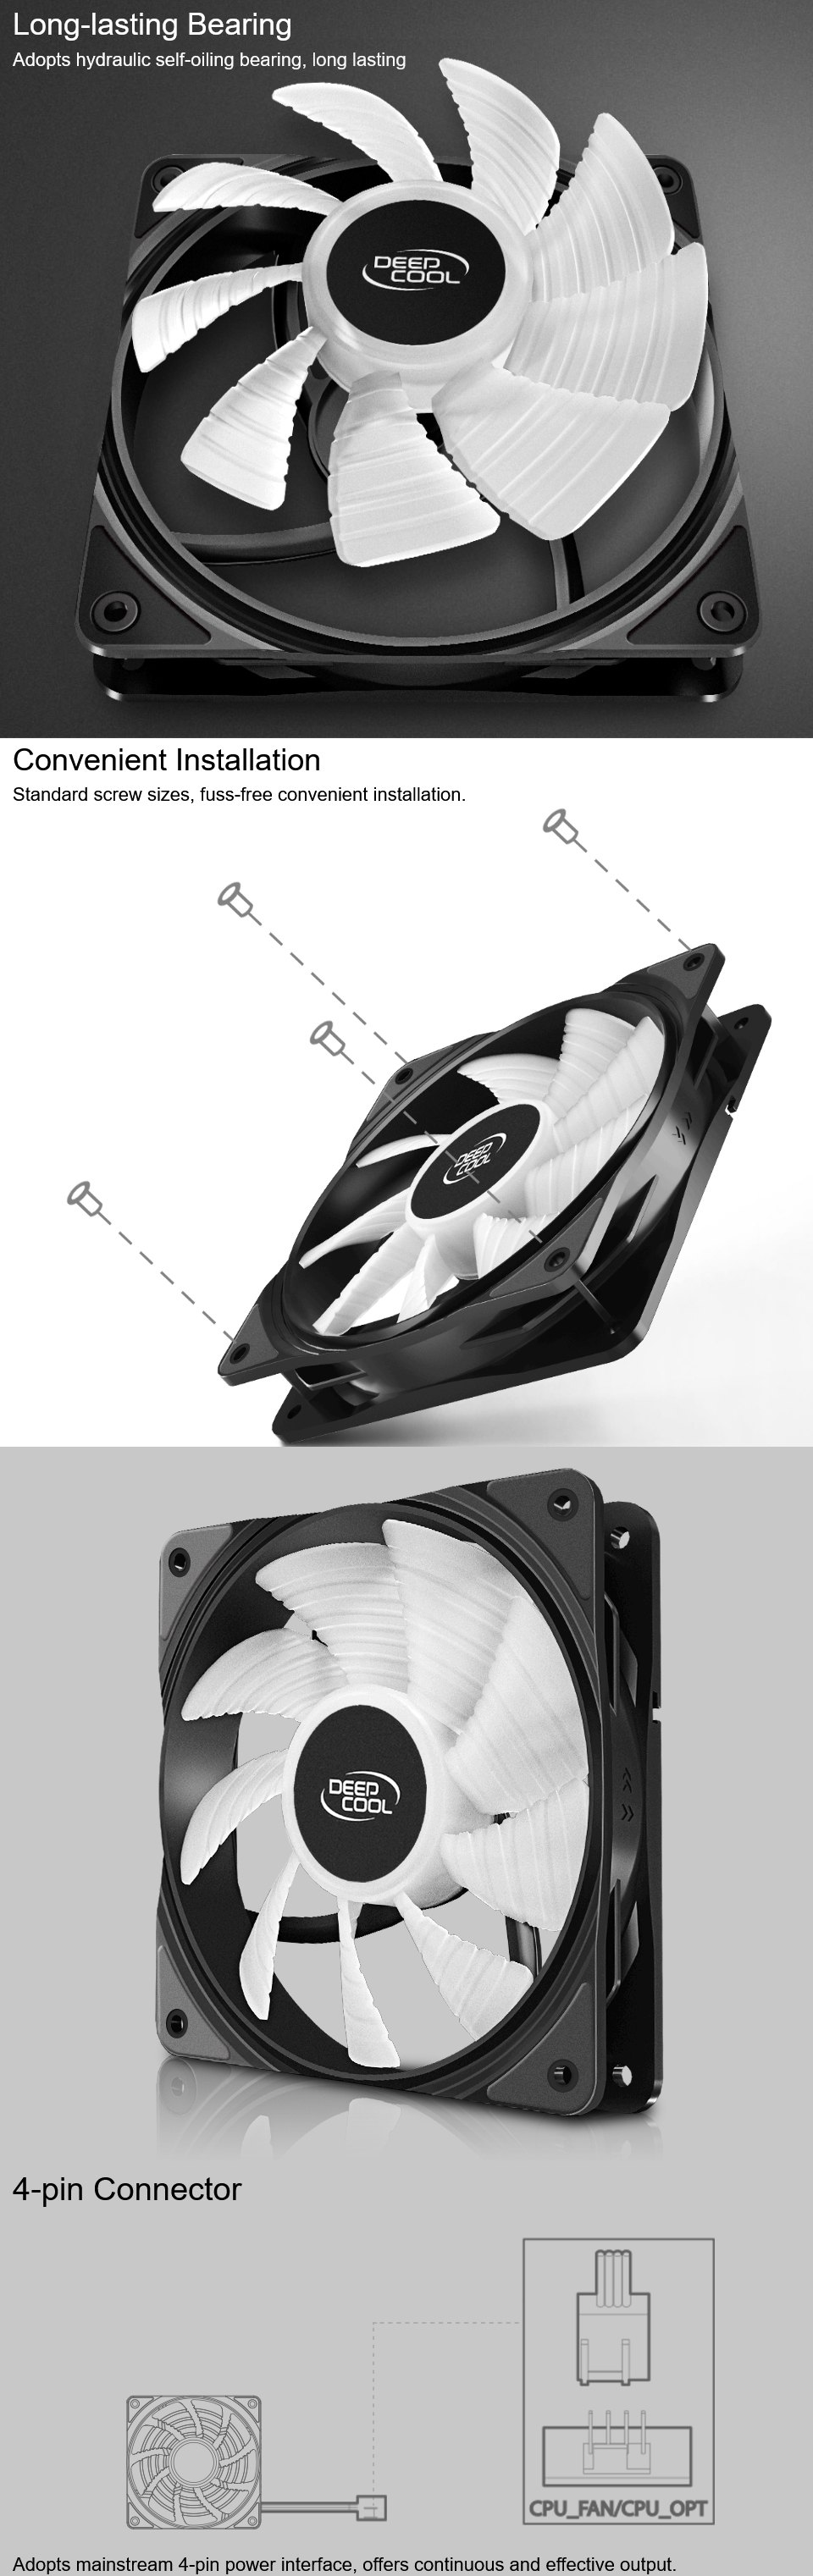 Deepcool RF-120 FS RGB Fan 120mm features 2